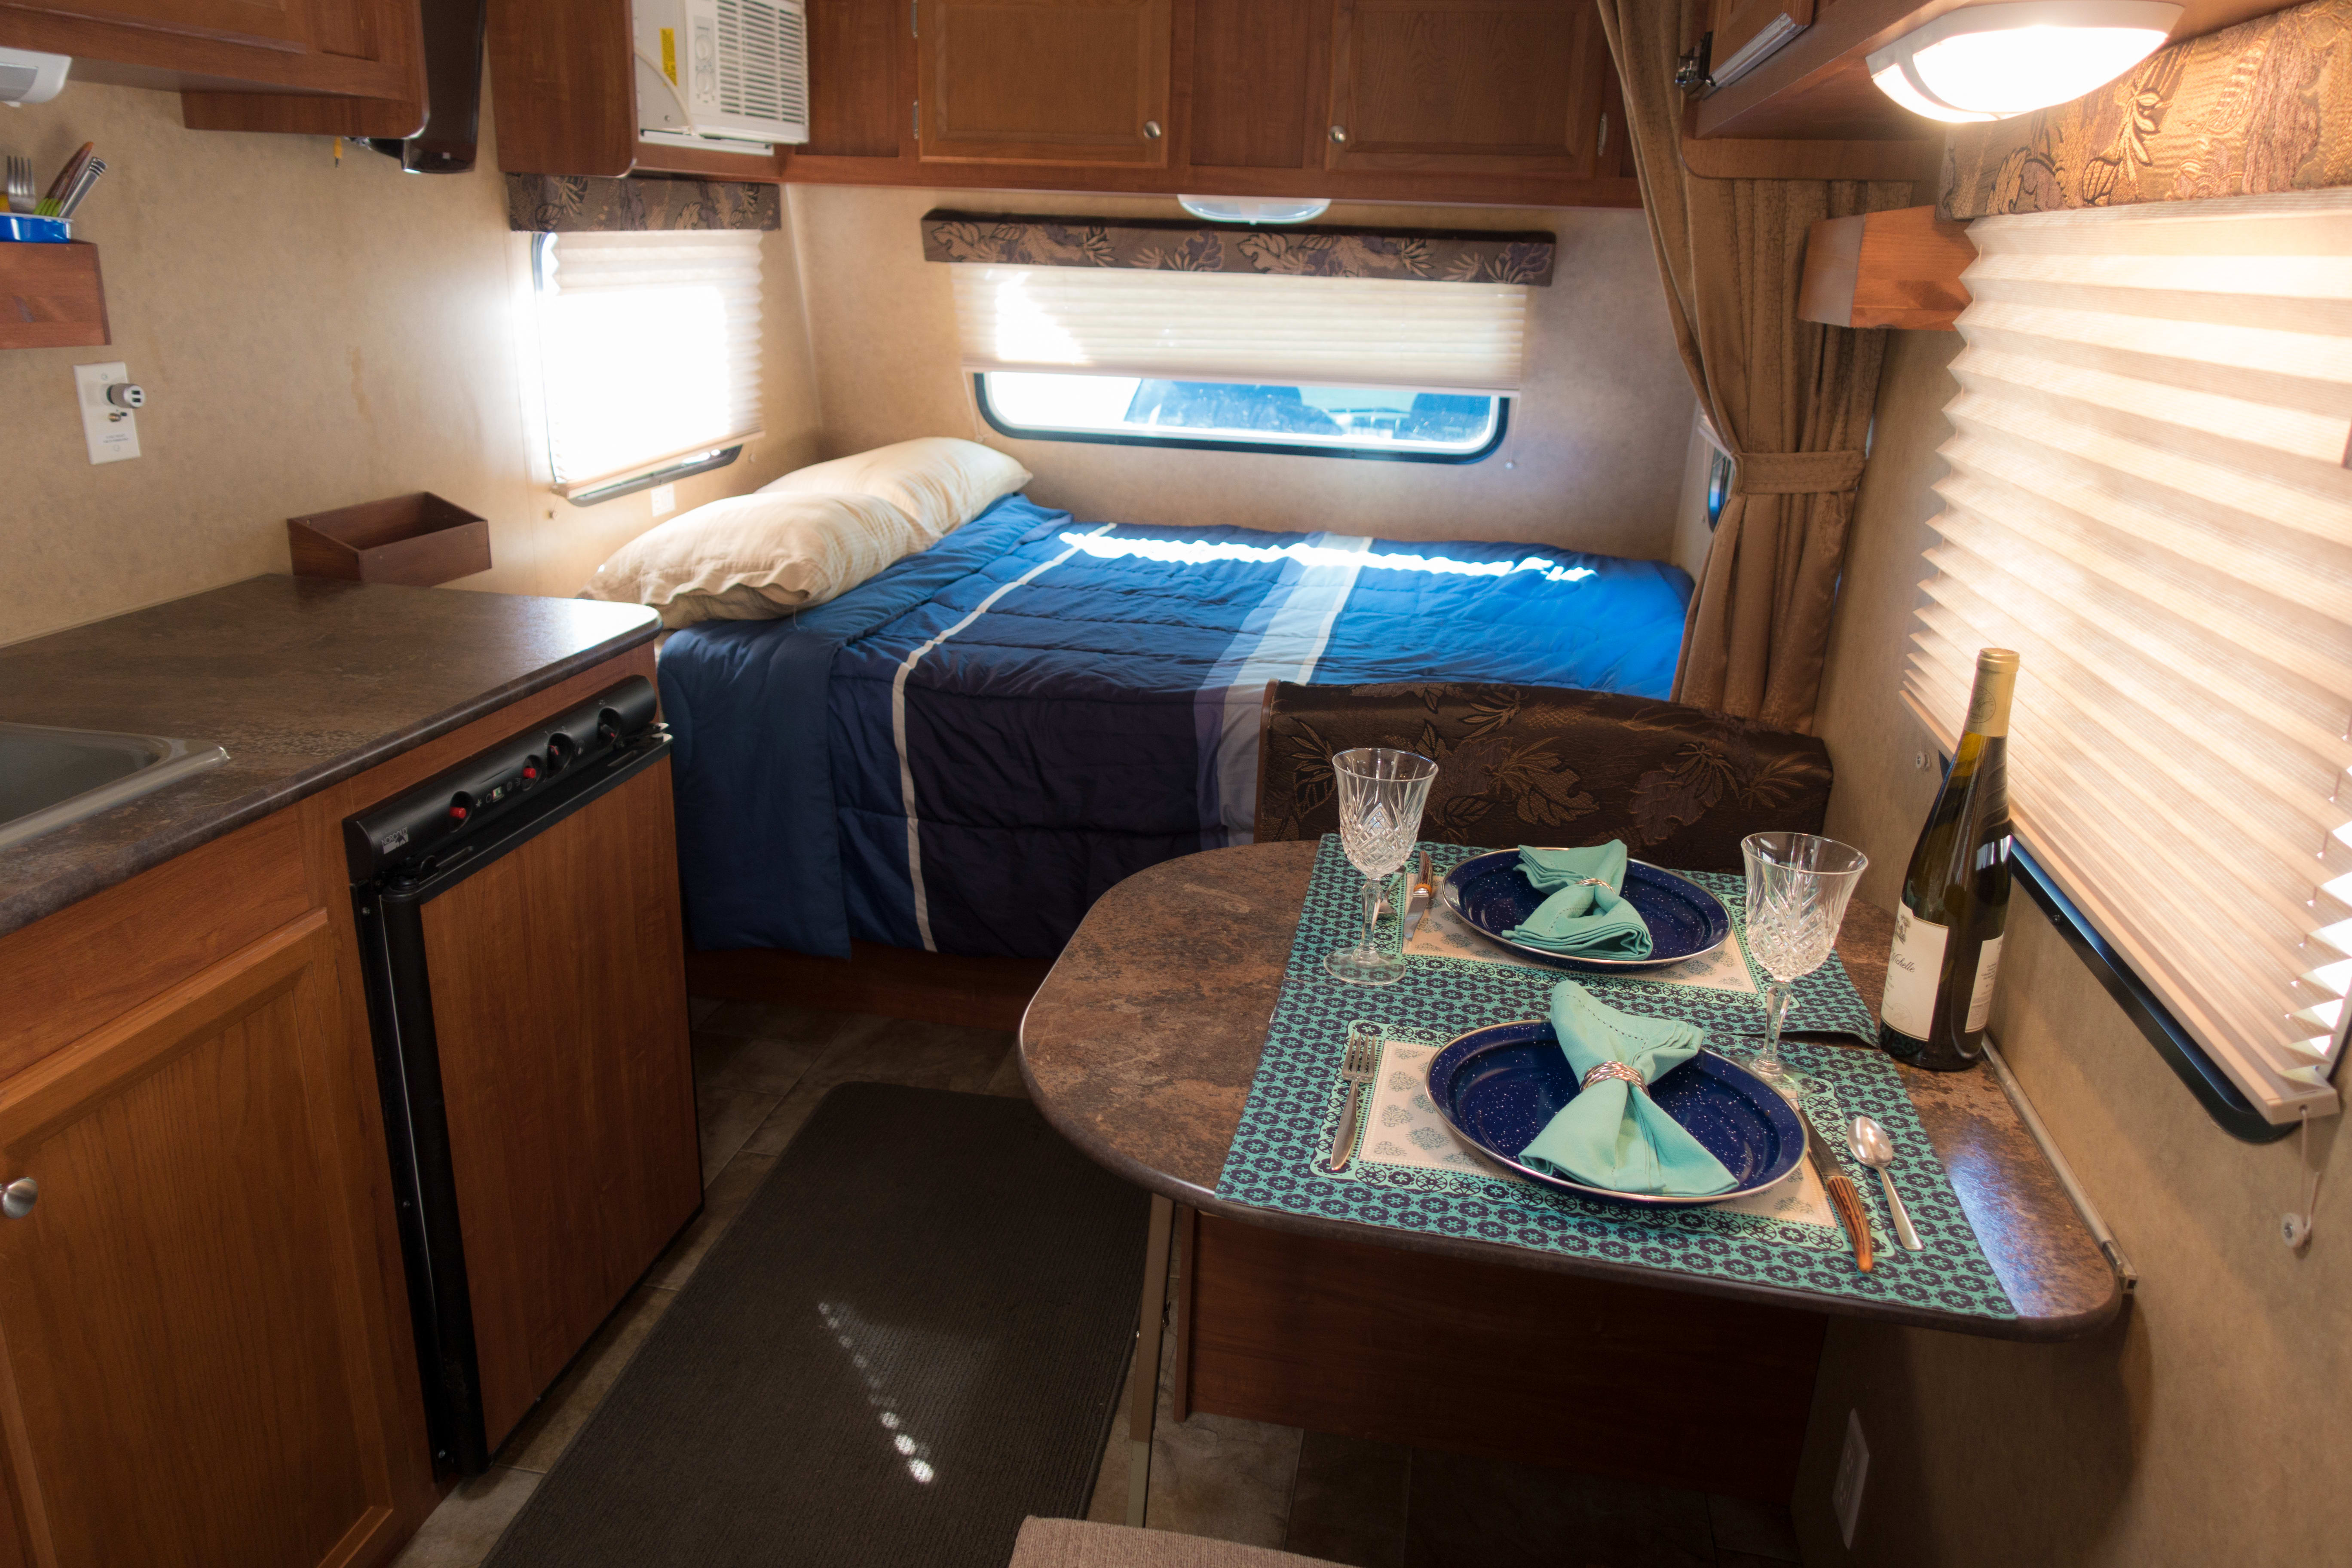 A lovely little trailer, ready for adventure or just hanging by the ocean or forest! . Jayco Jay Flight Swift 2013